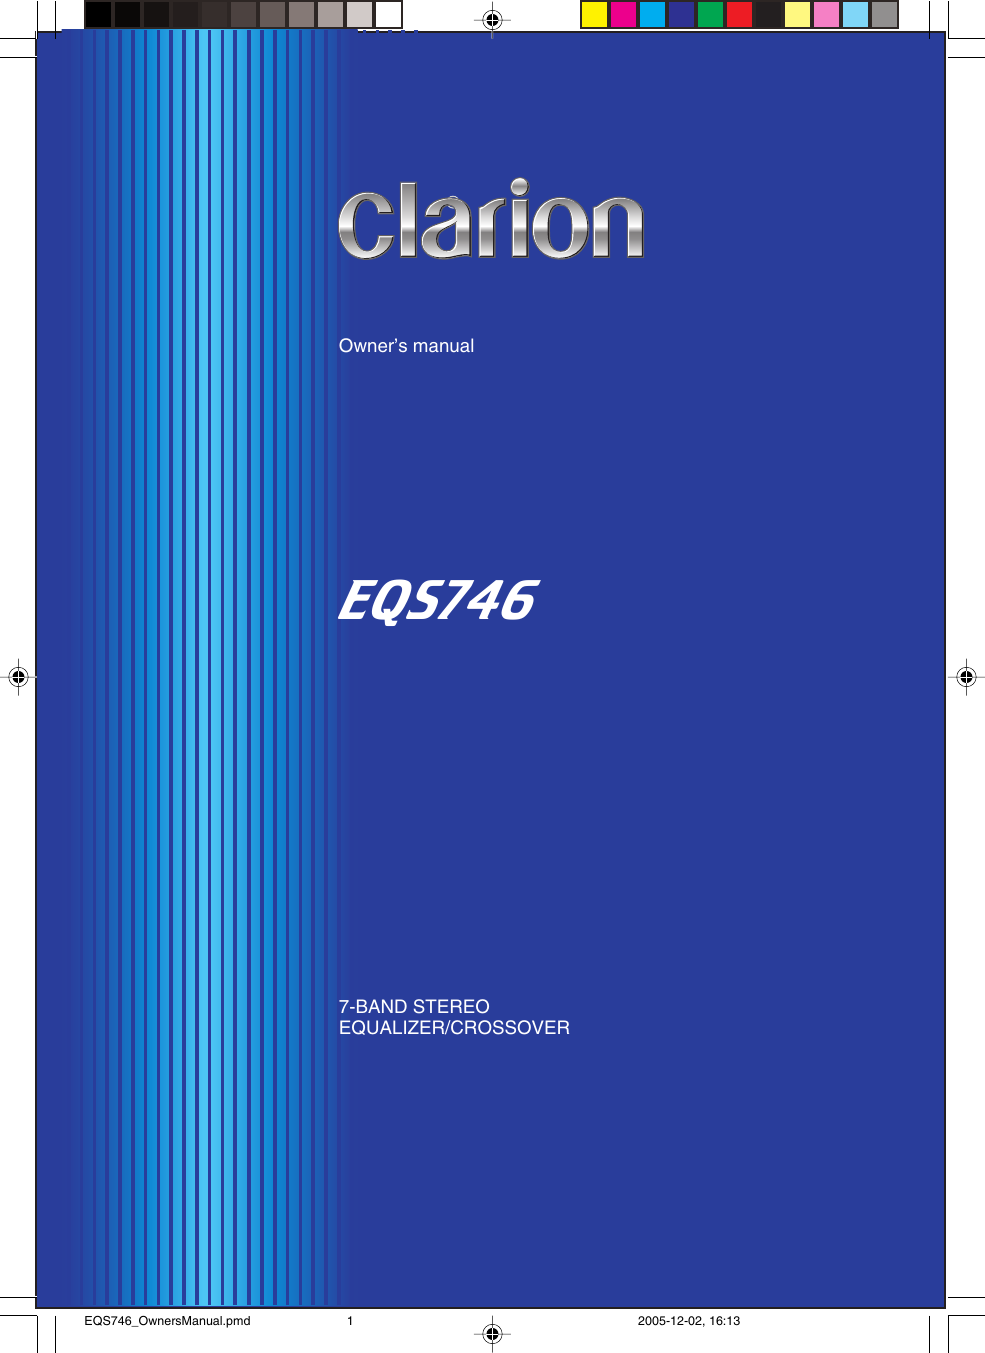 Clarion Eqs746 Owners Manual EQS746_OwnersManual.pmd